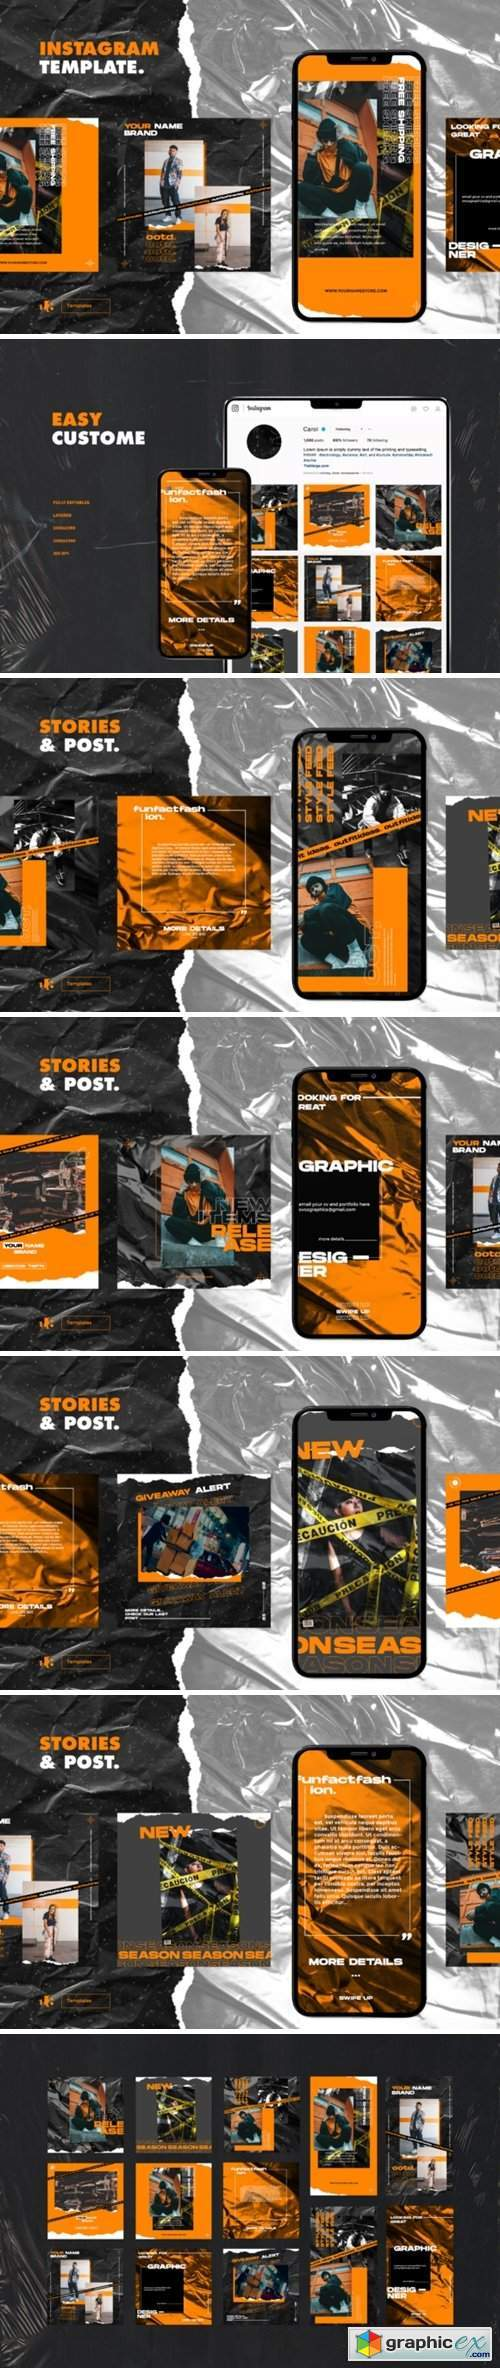 Instagram Template 2893216